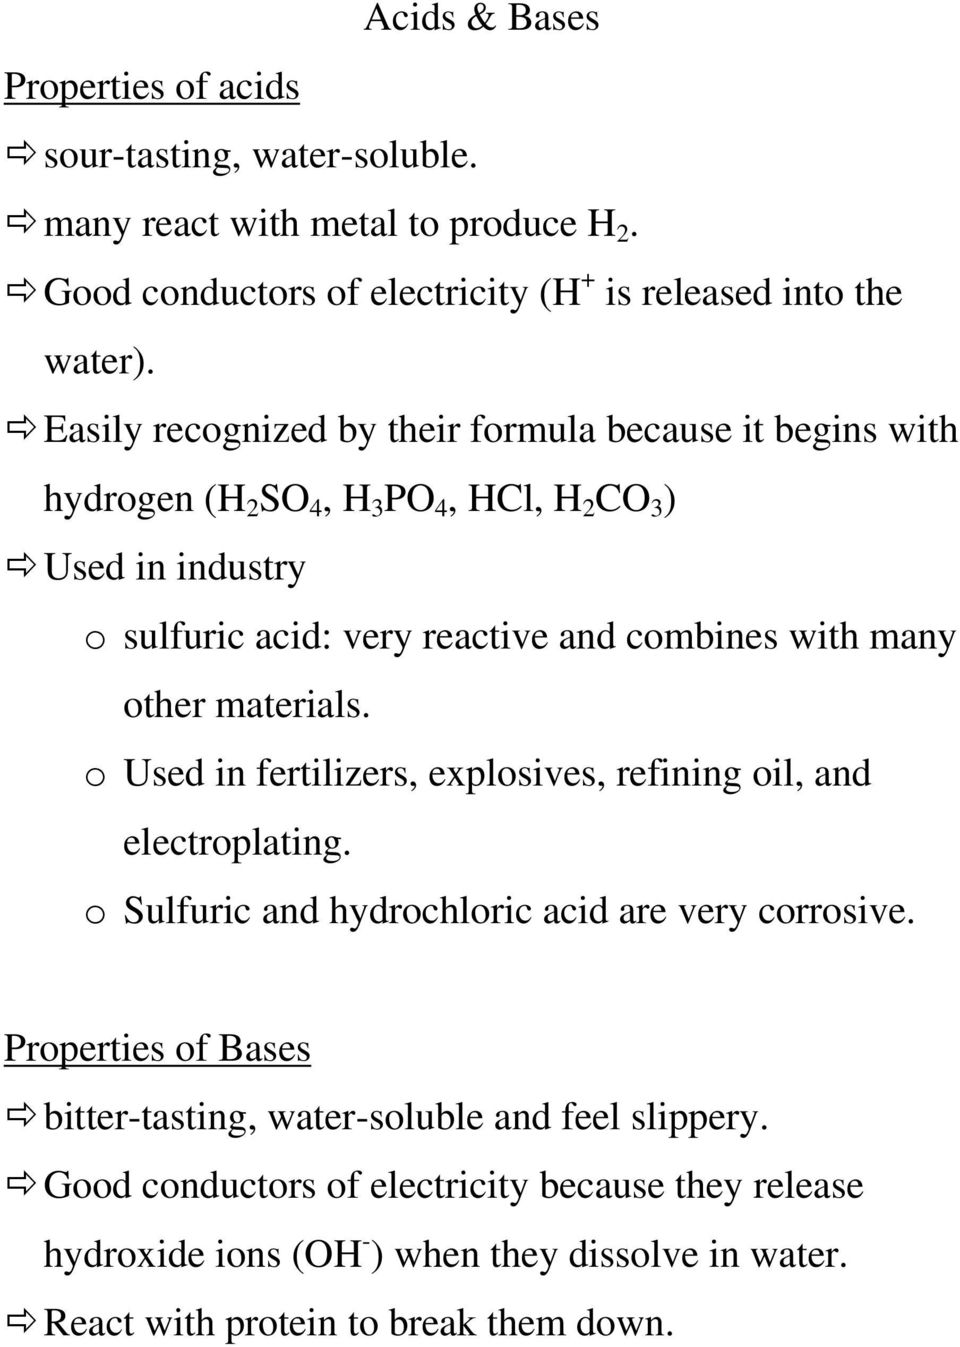 many other materials. o Used in fertilizers, explosives, refining oil, and electroplating. o Sulfuric and hydrochloric acid are very corrosive.